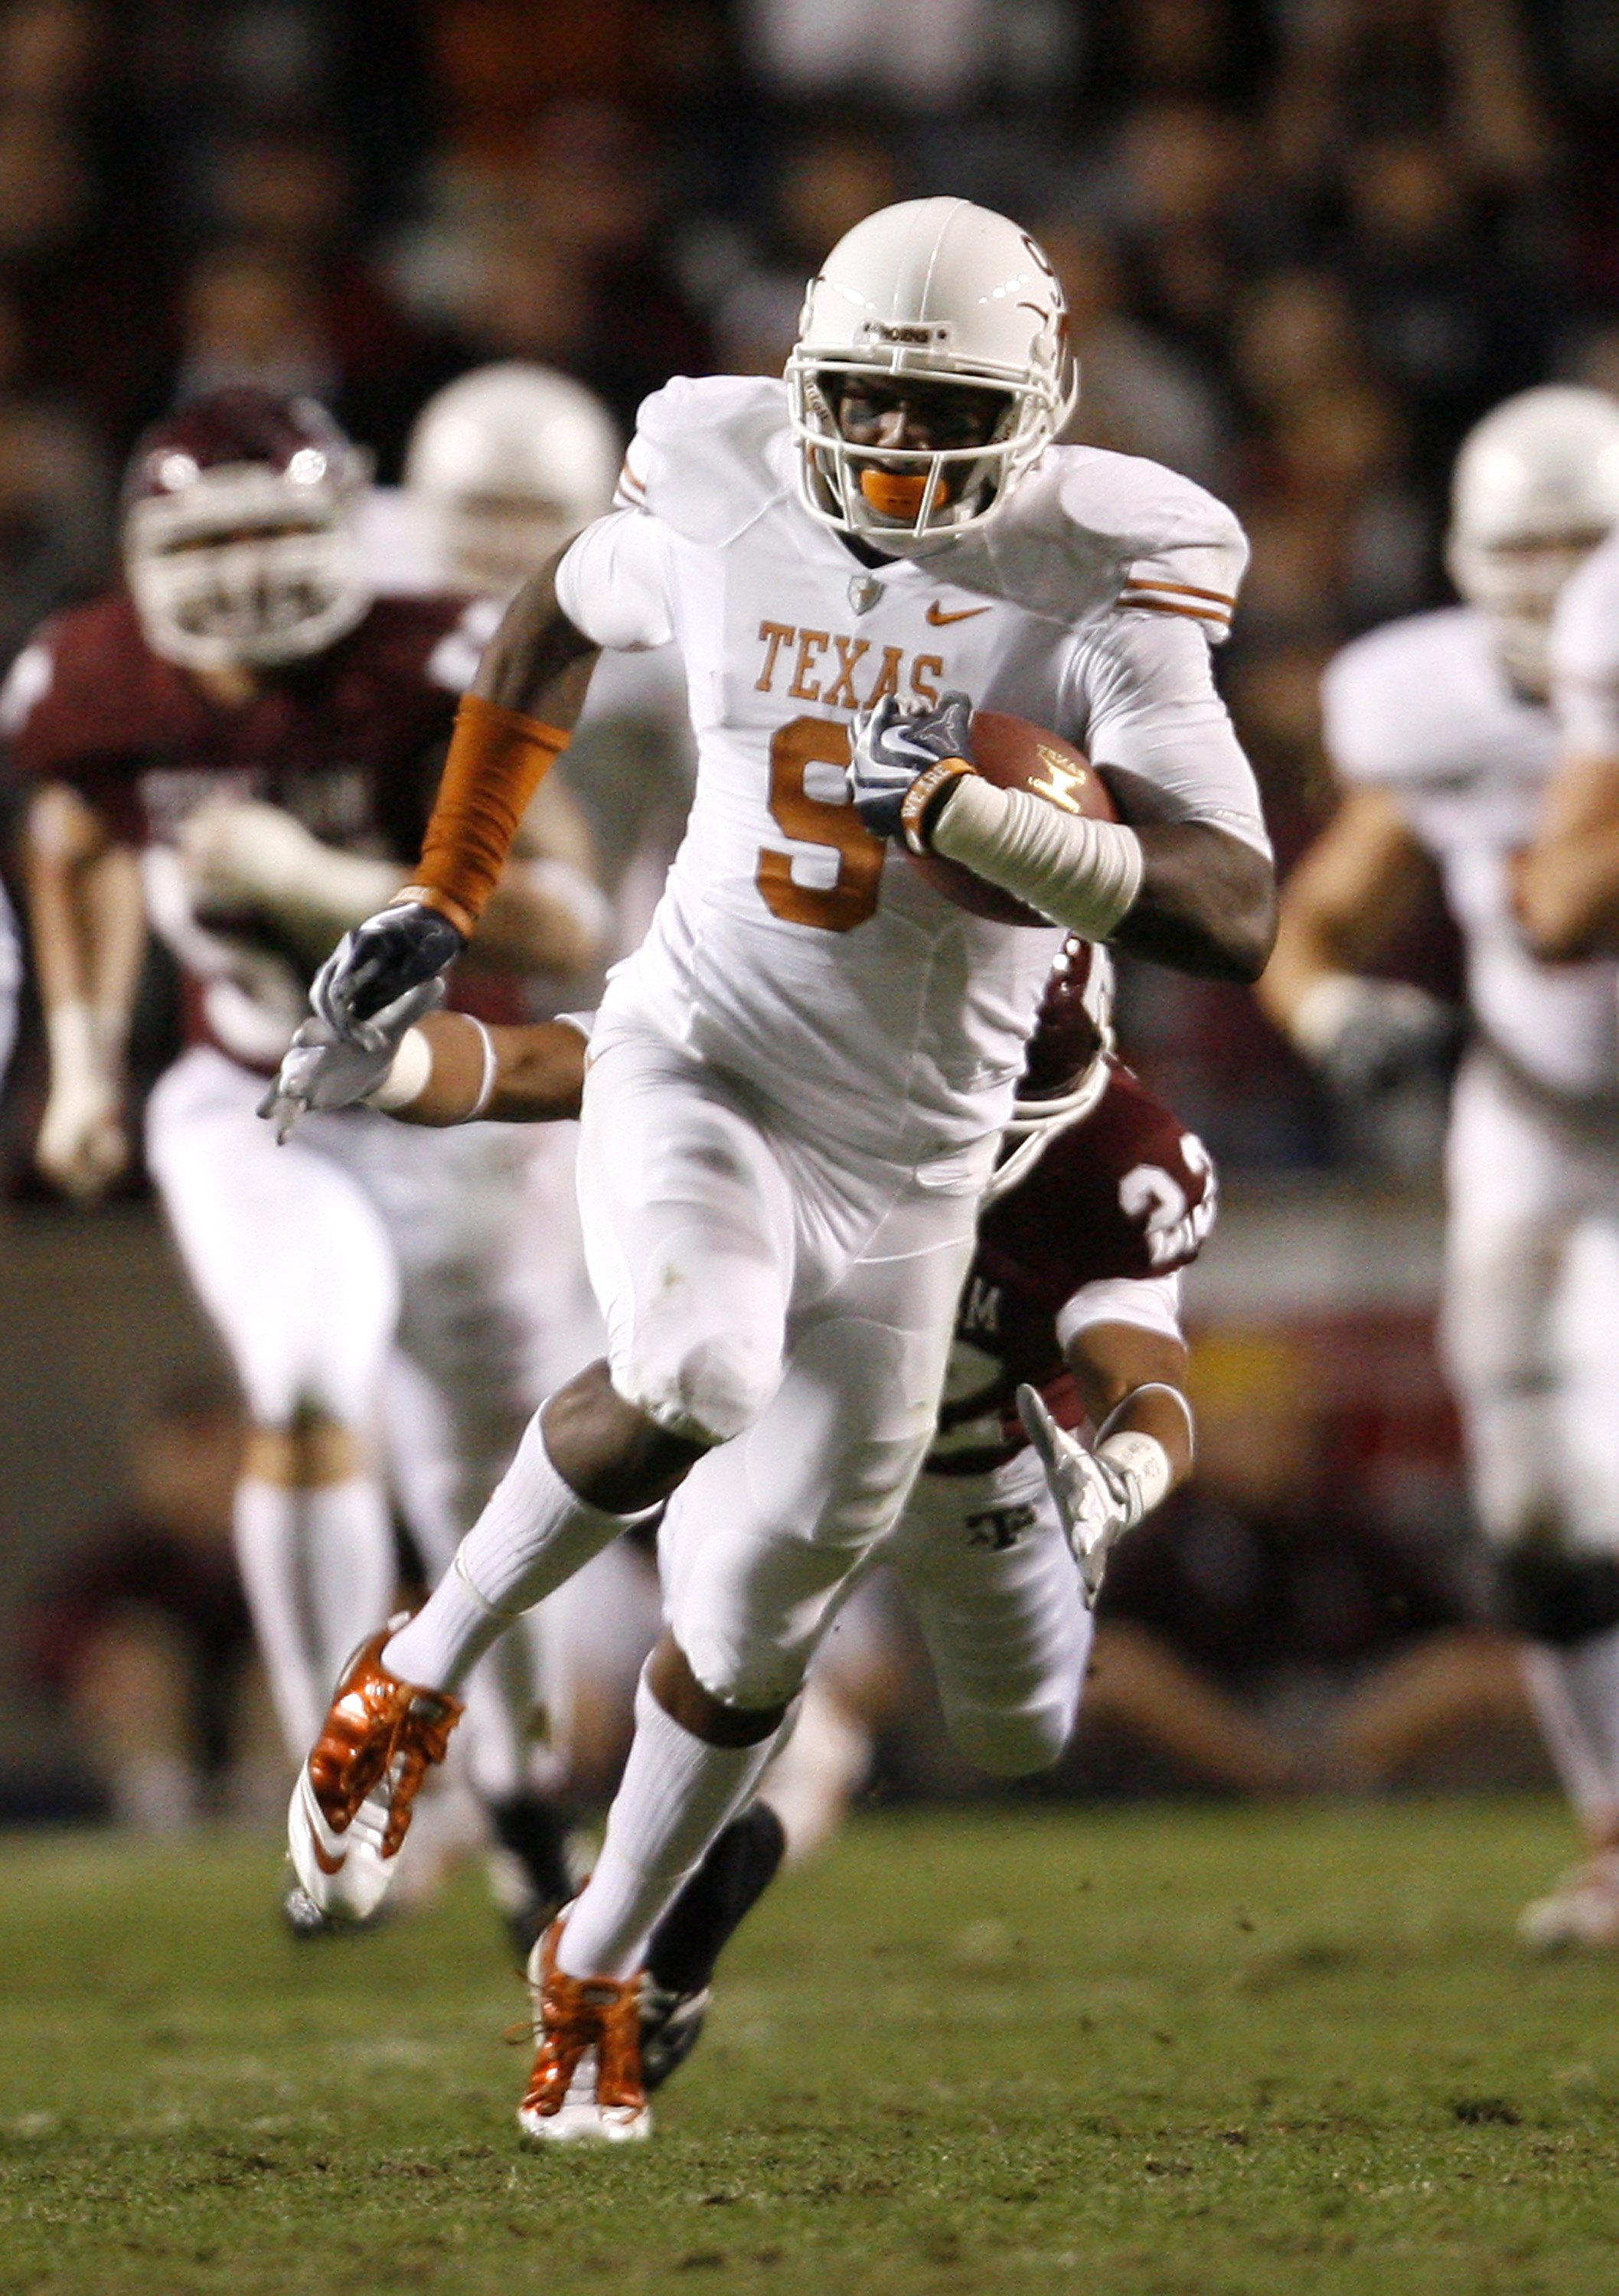 COLLEGE STATION, TX - NOVEMBER 26:  Wide receiver Malcolm Williams #9 of the Texas Longhorns runs for a gain after making a reception against the Texas A&M Aggies in the first half at Kyle Field on November 26, 2009 in College Station, Texas. The Longhorn